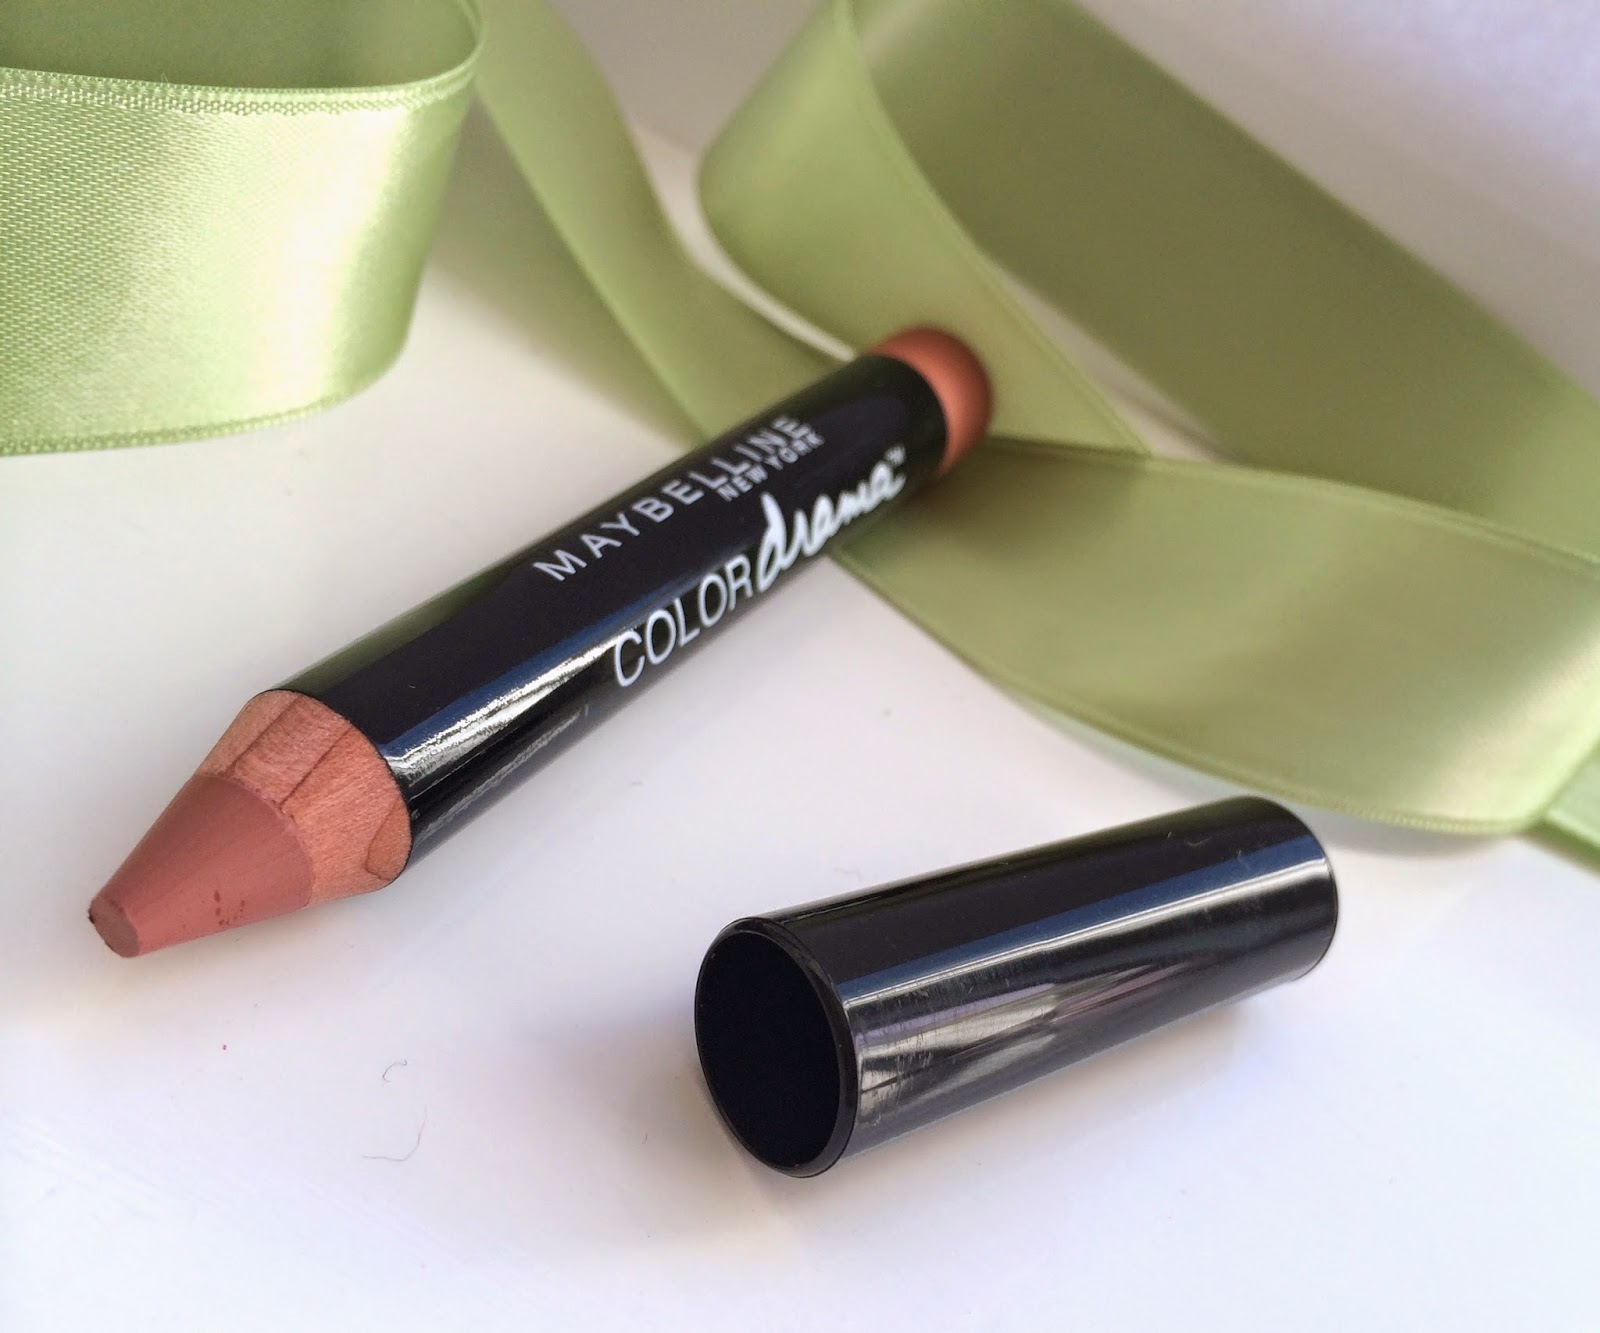 maybelline-color-drama-lipstick-nude-perfection